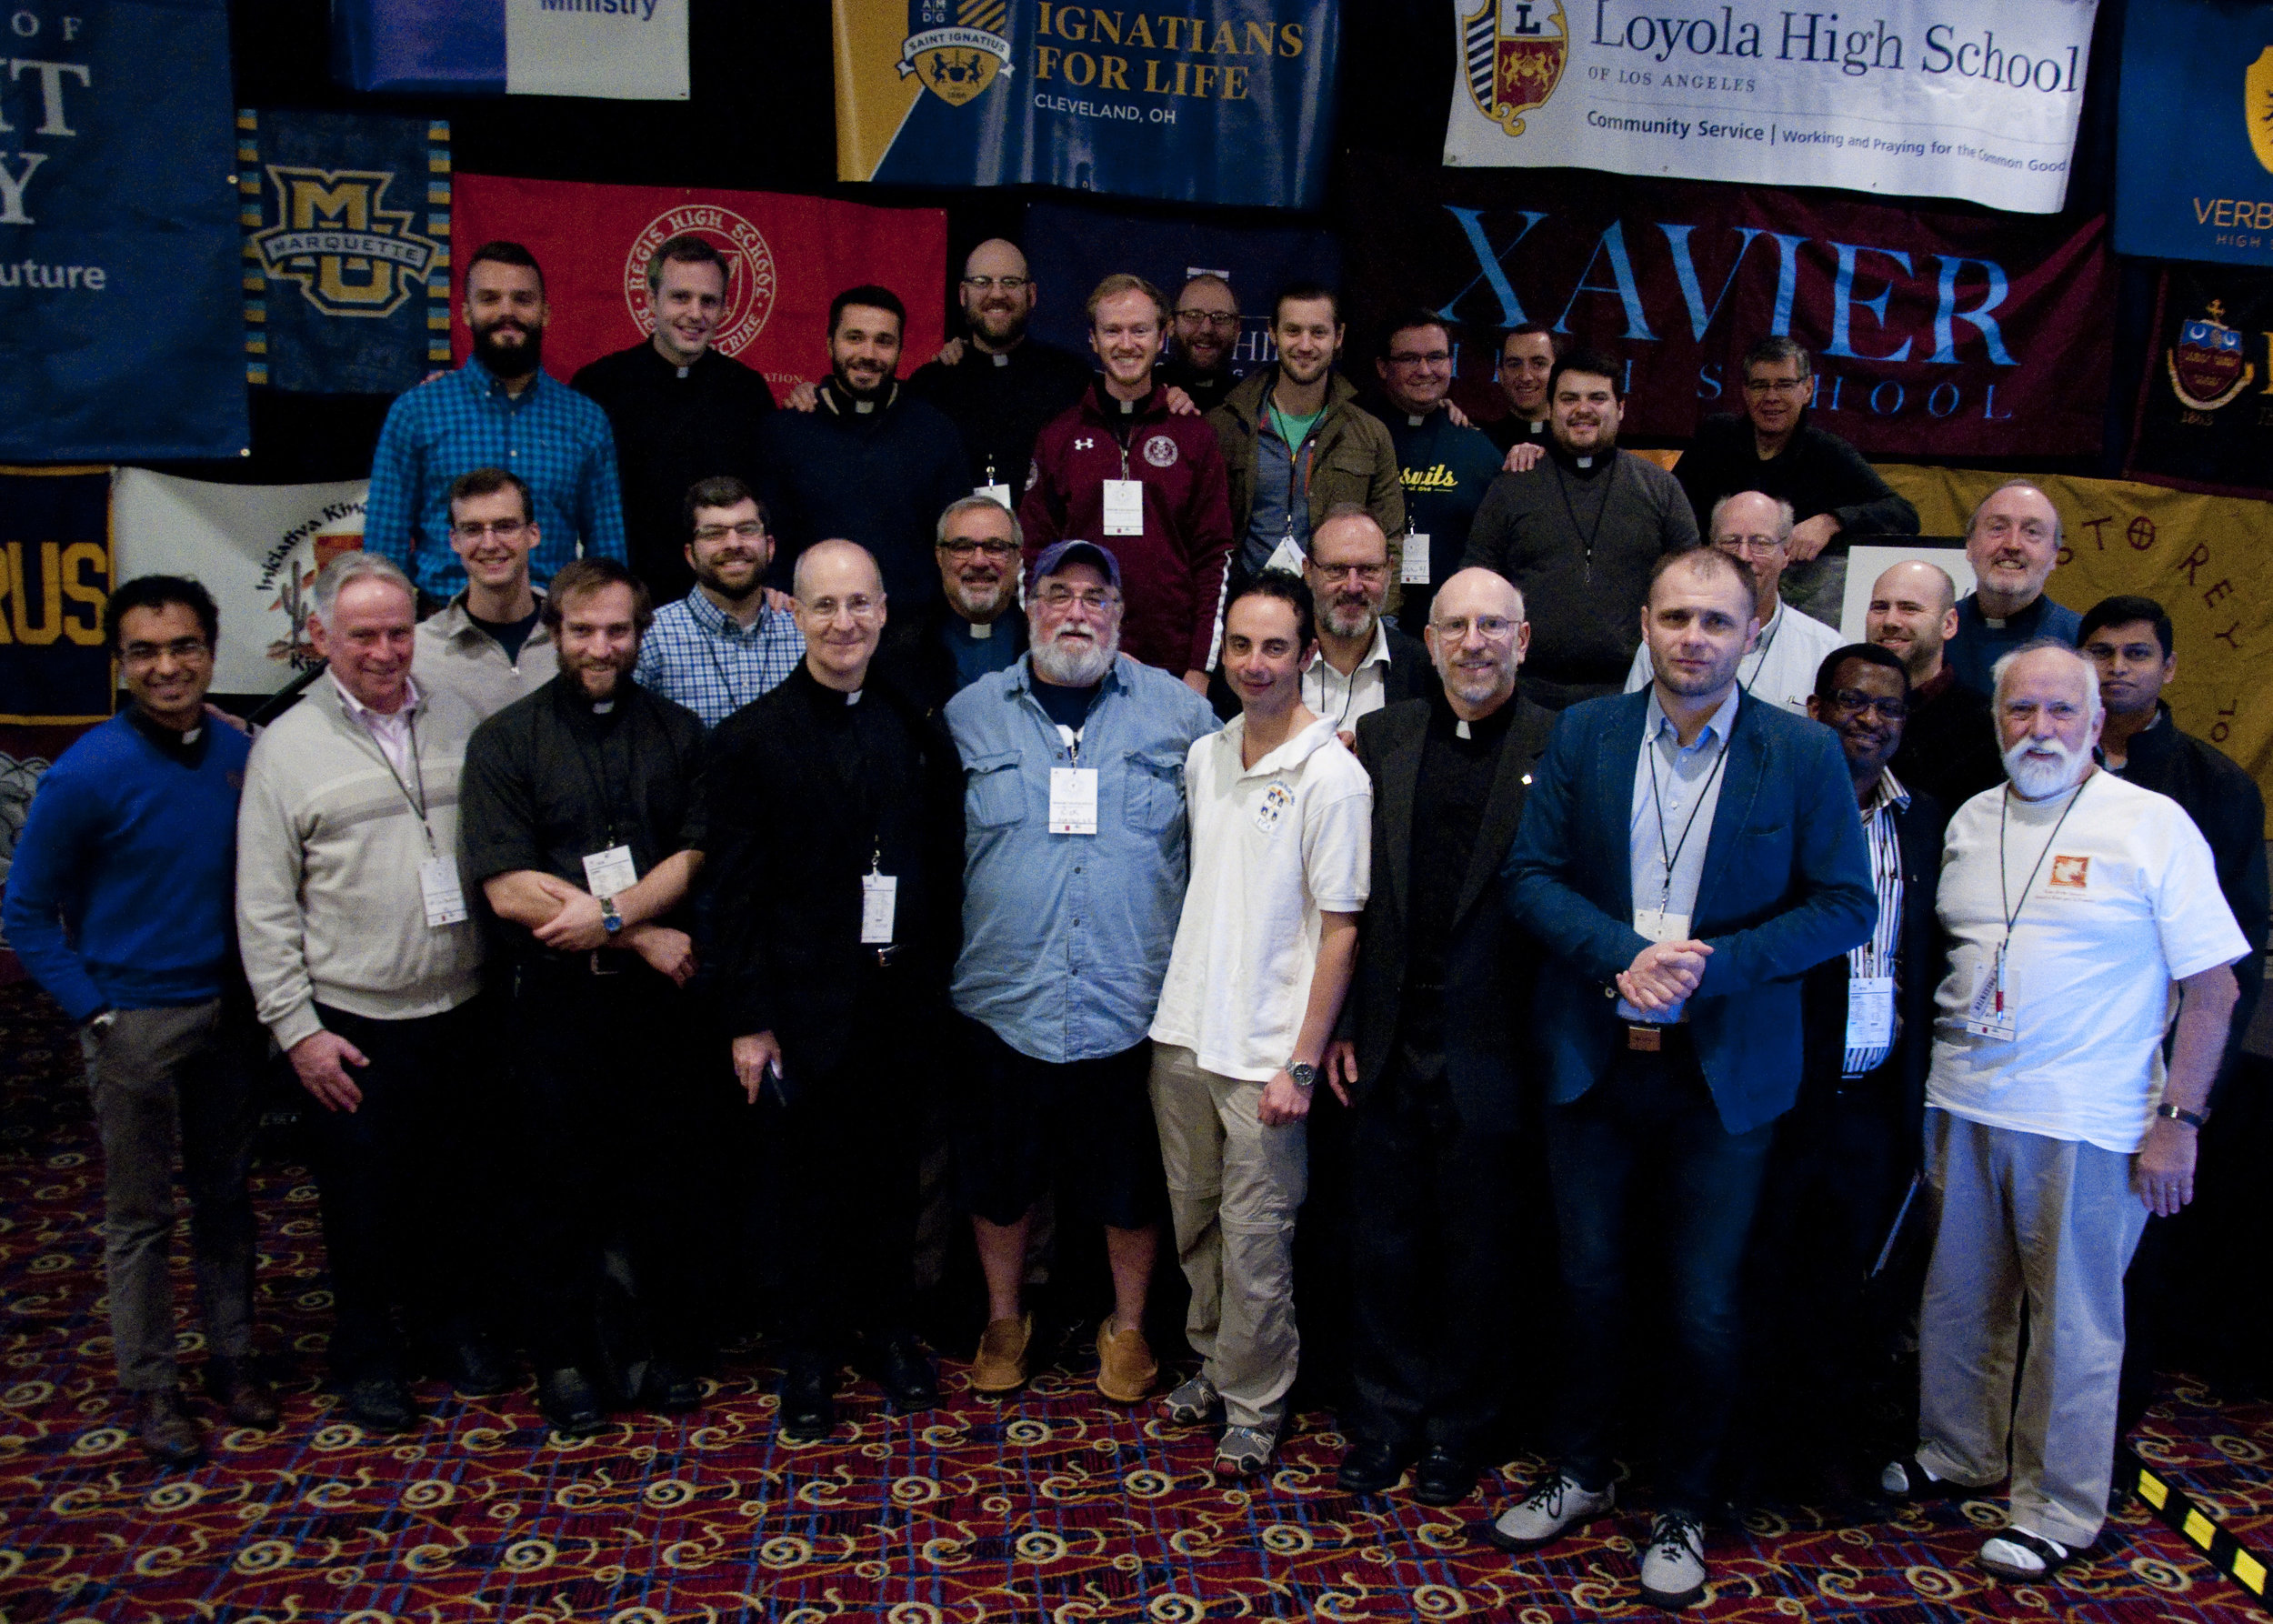 Jesuits from around the country gather together to support students at the IFTJ16